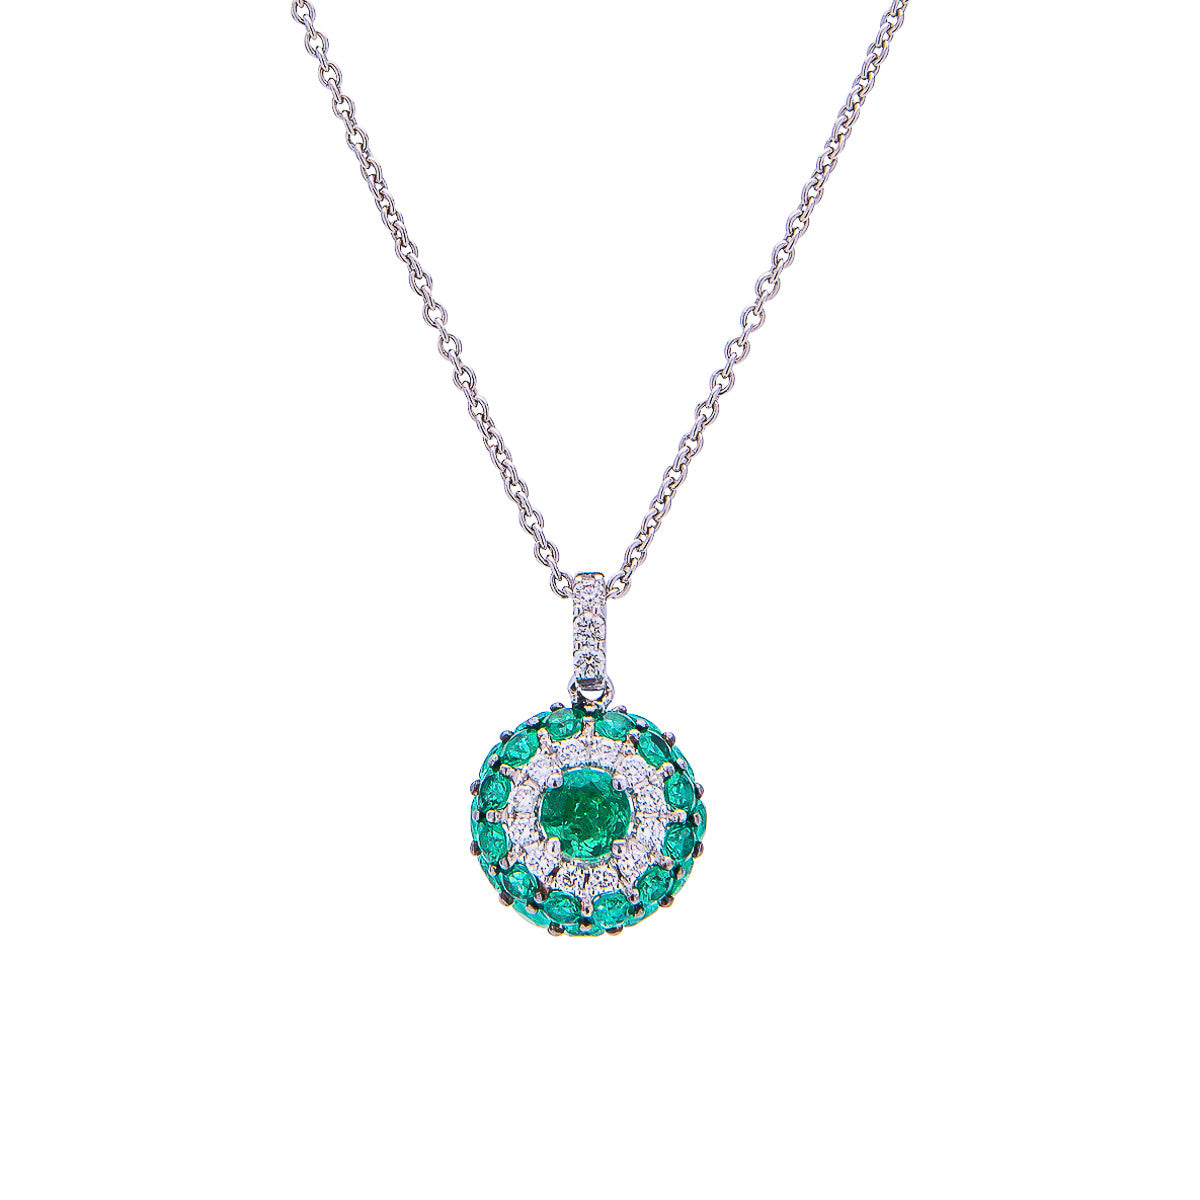 Sabel Collection 18K White Round Emerald with Round Diamond Accent Pendant Necklace